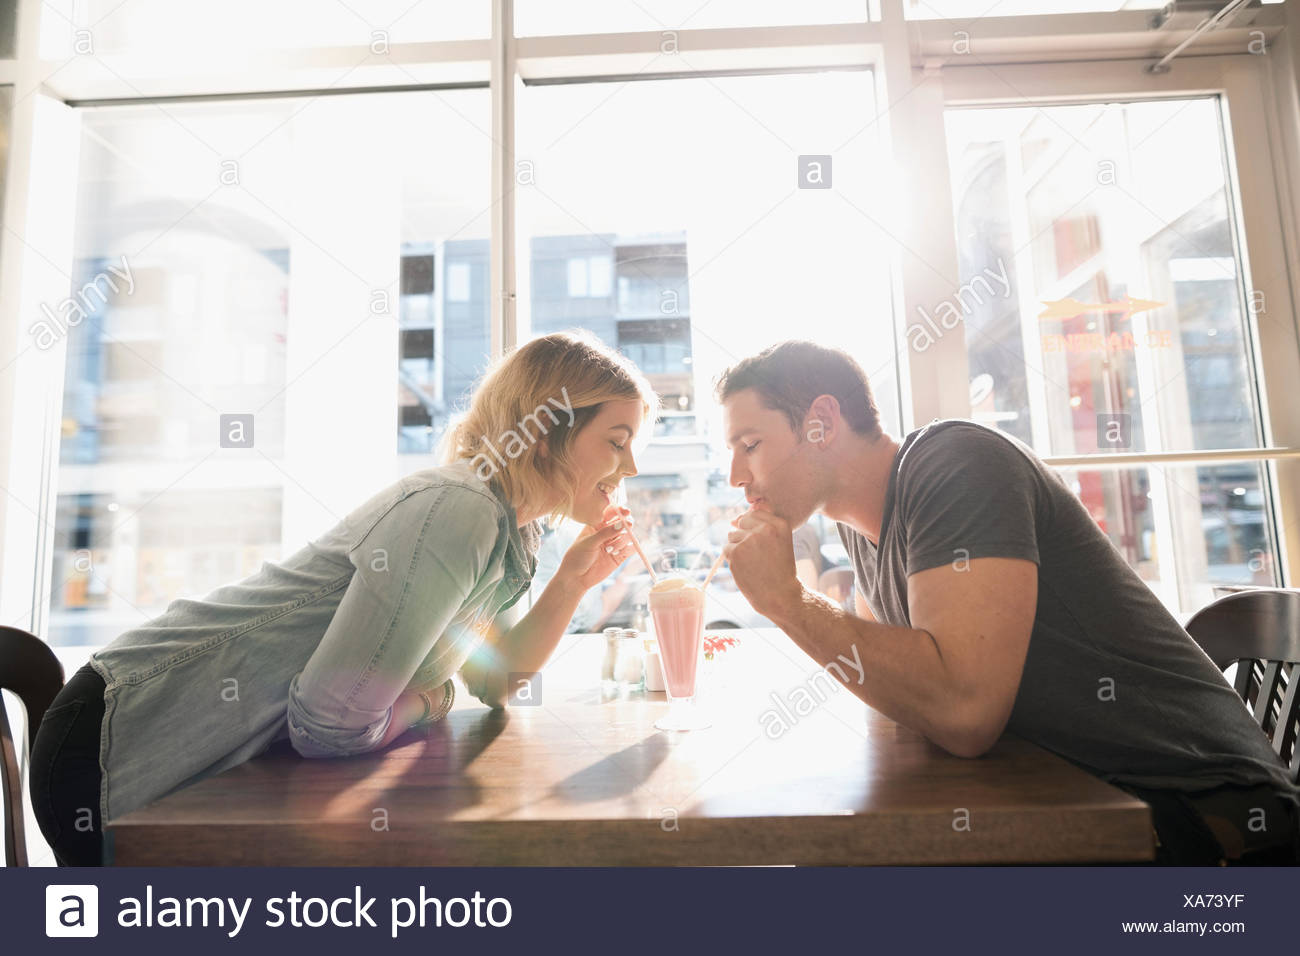 Young couple sharing milkshake at sunny diner table - Stock Image